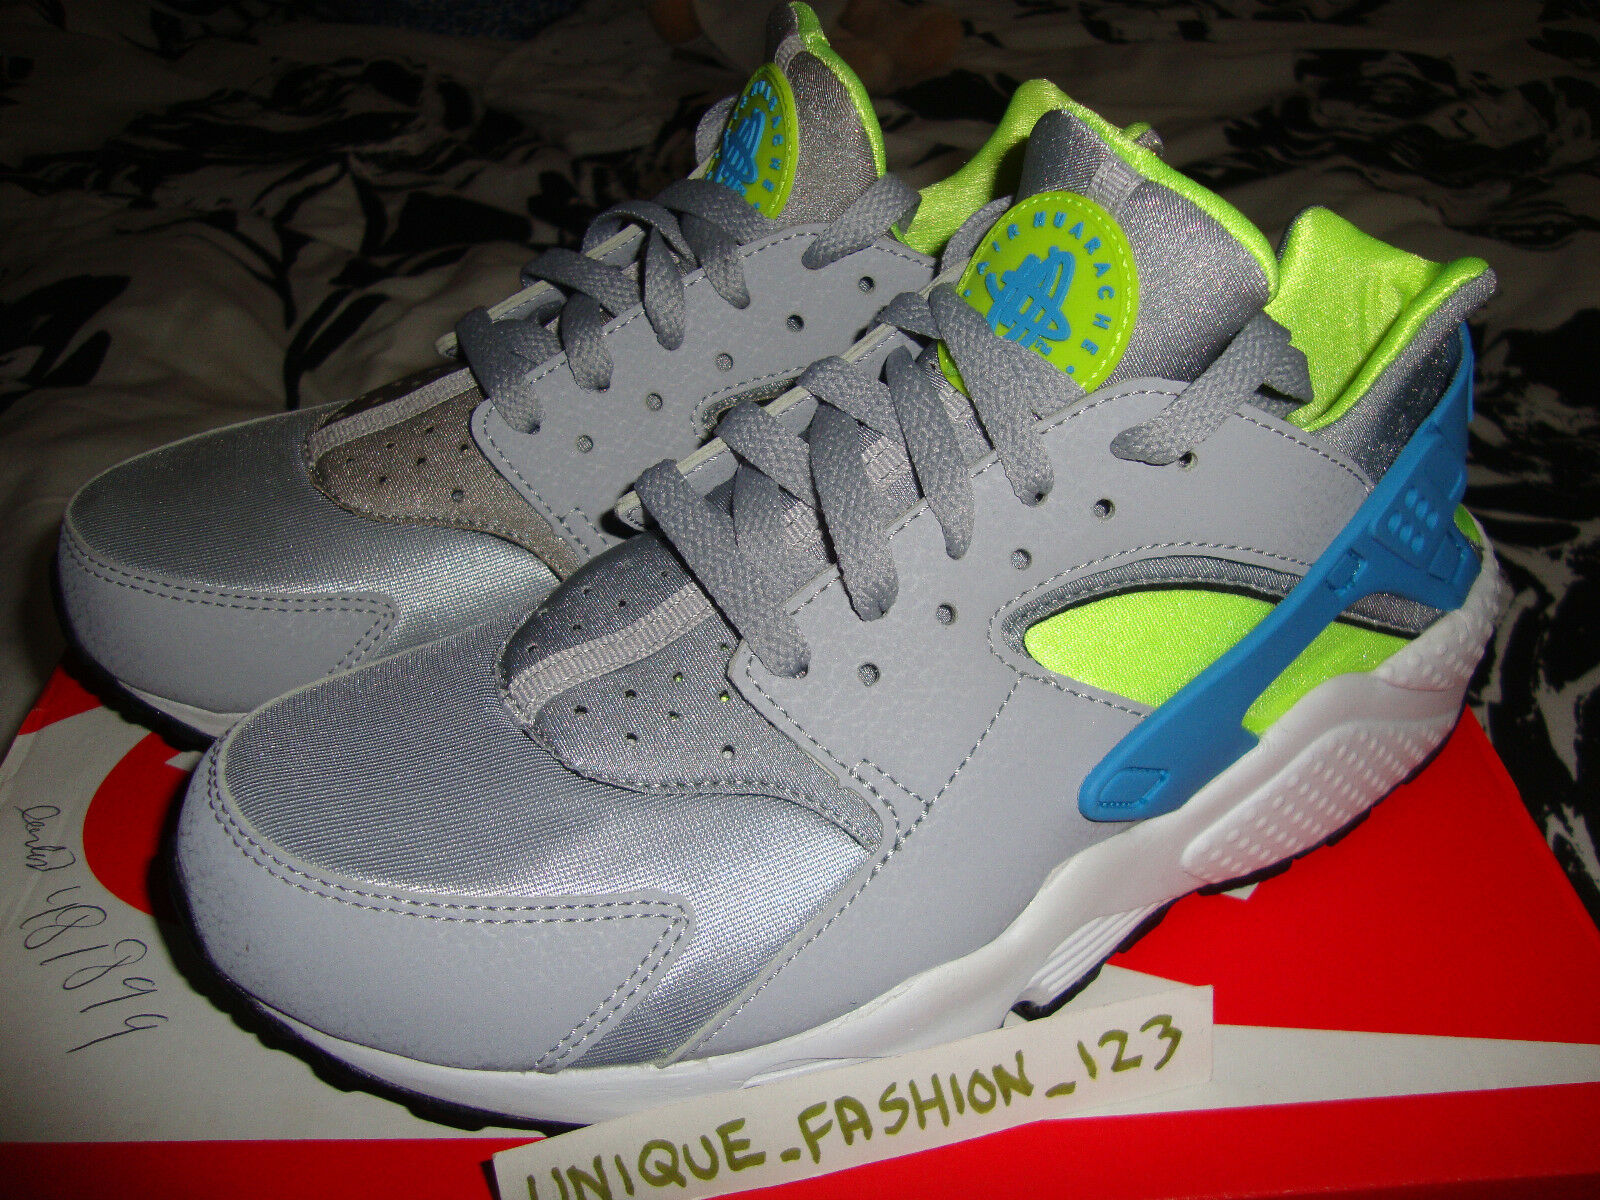 NIKE AIR HUARACHE LE WOLF WOLF WOLF GREY VOLT US 7.5 UK 6.5 40.5 TRIPLE BLACK Weiß QS OG ab3540